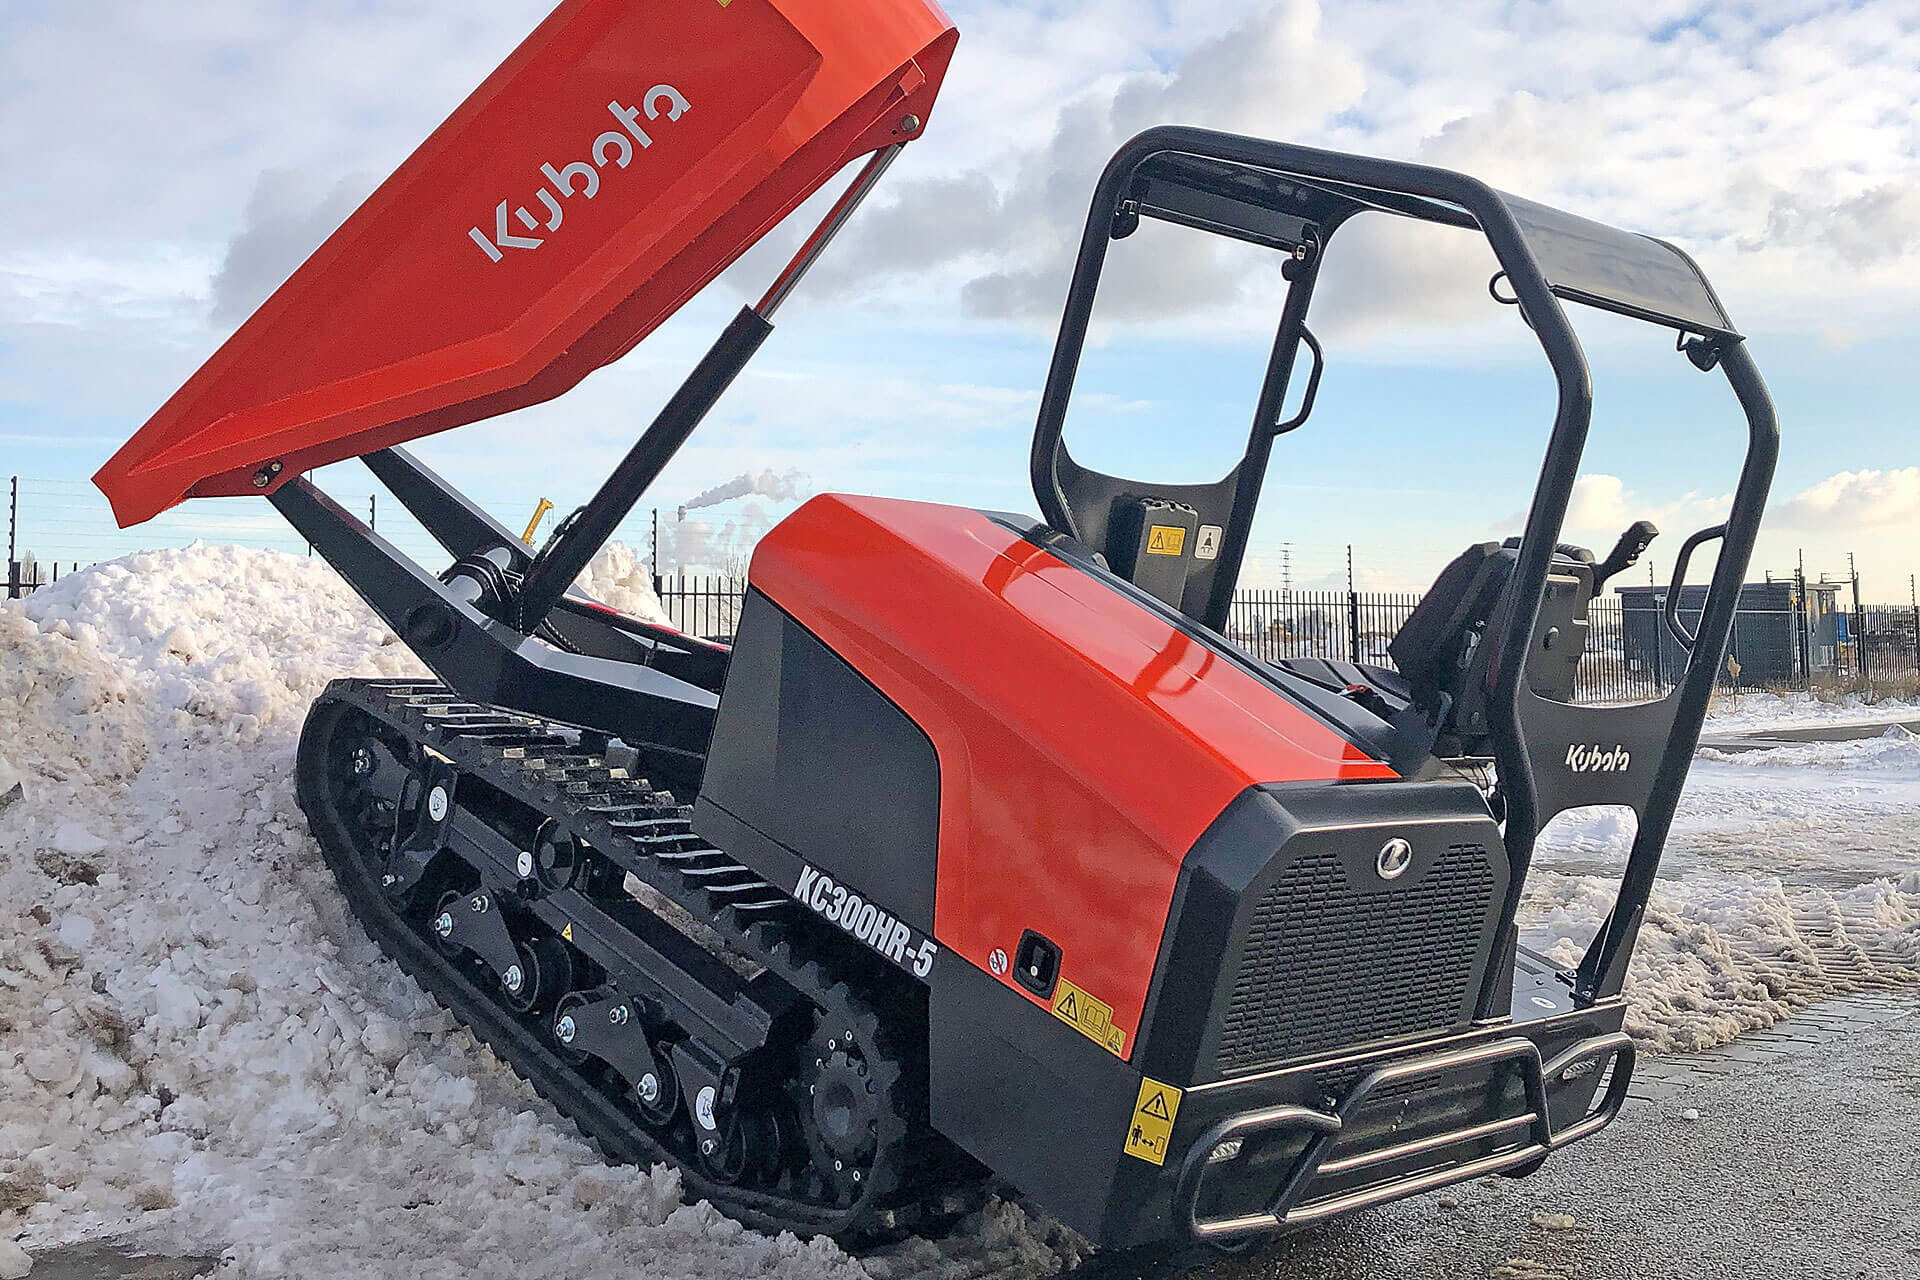 Read more about the article Kettendumper mit Abgasstufe V